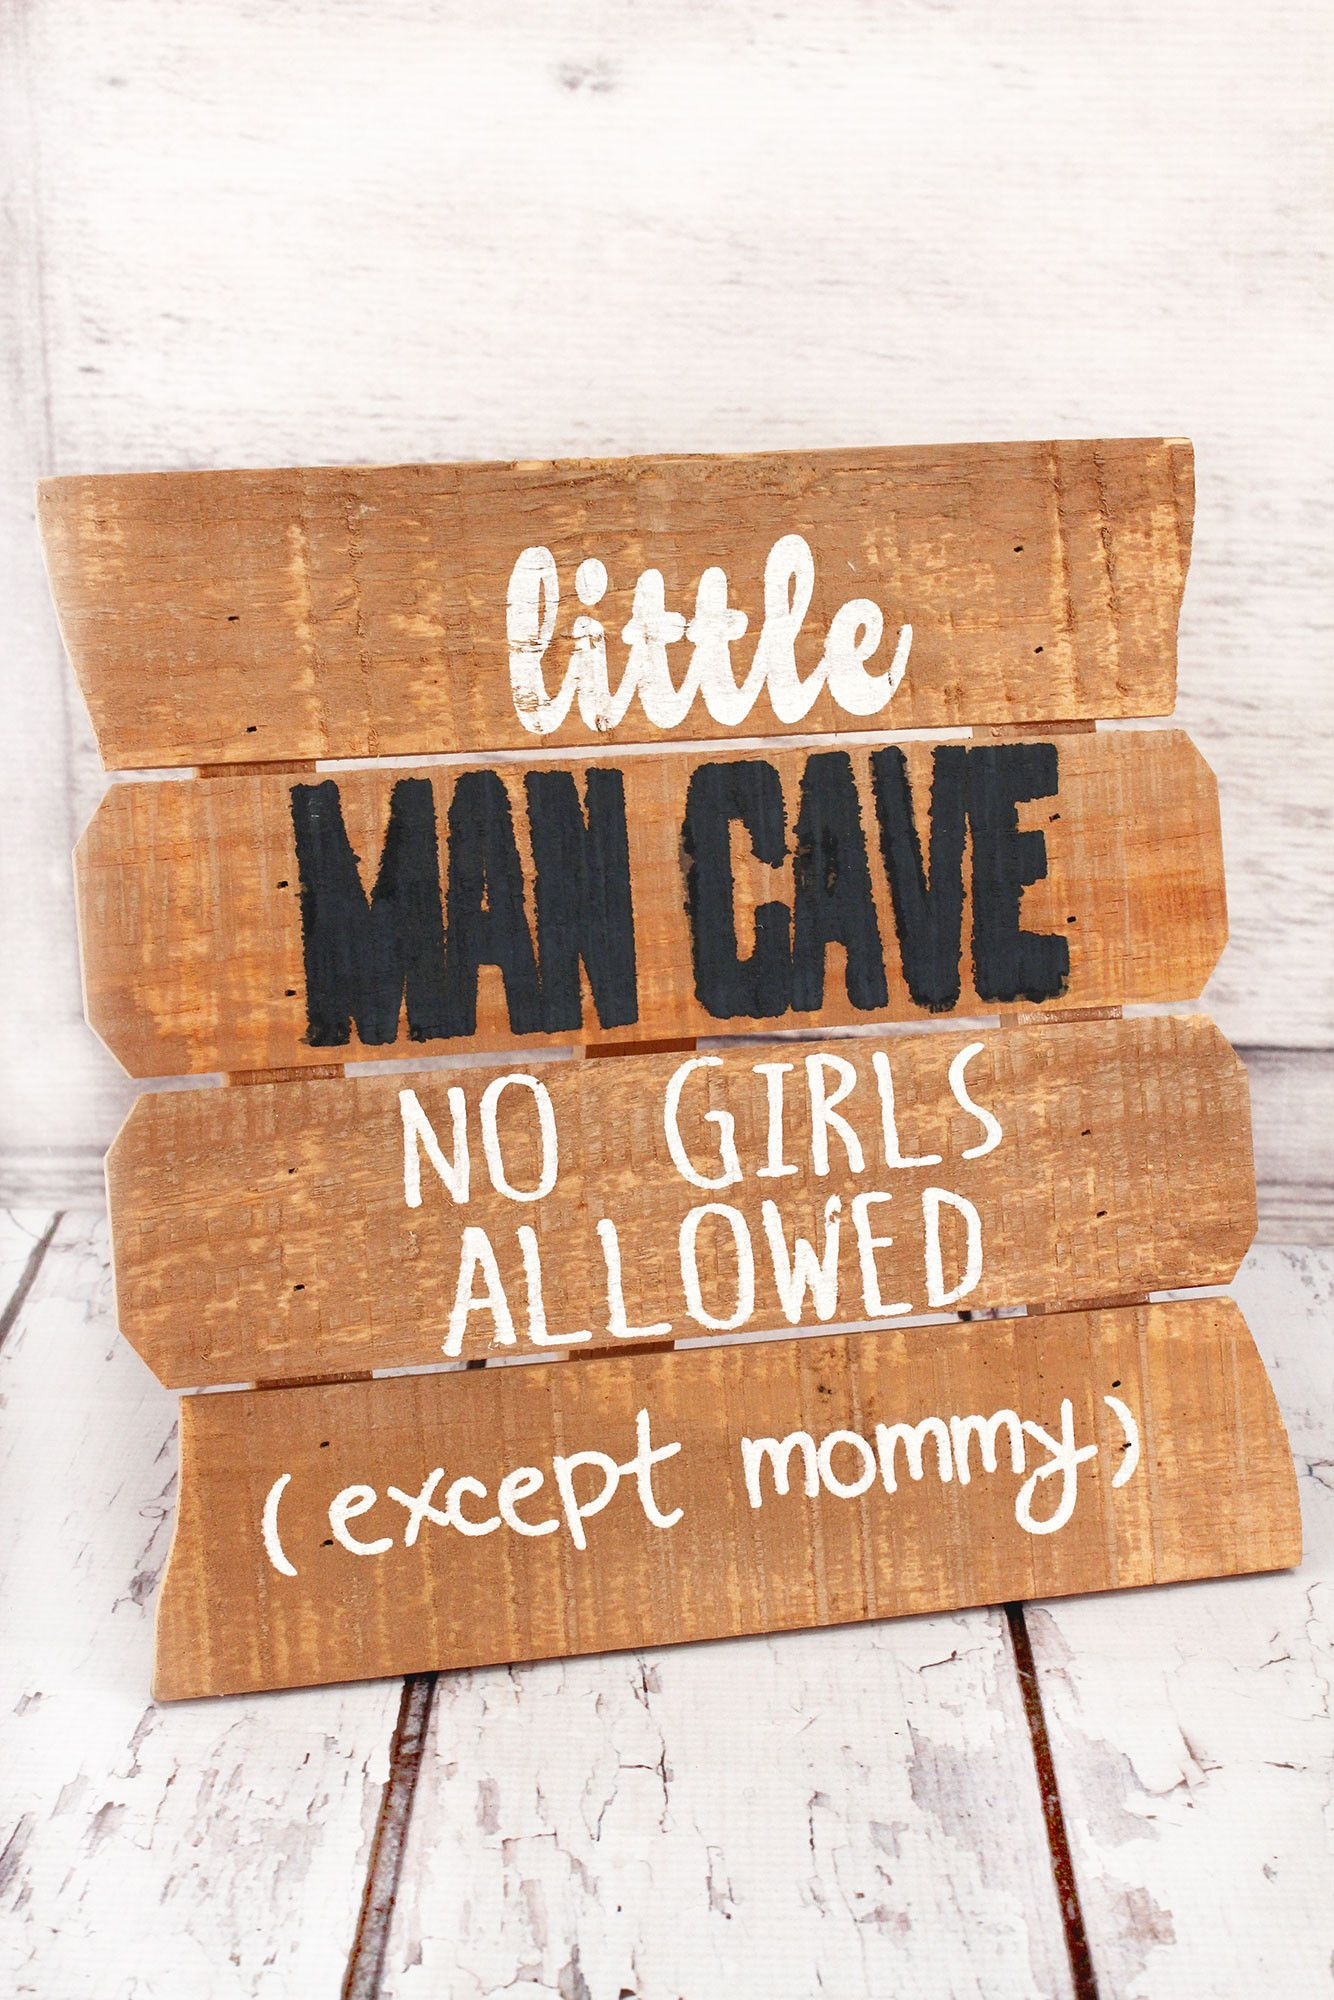 10 x 9 75 Little Man Cave Wood Plank Tabletop Sign EFDY0023